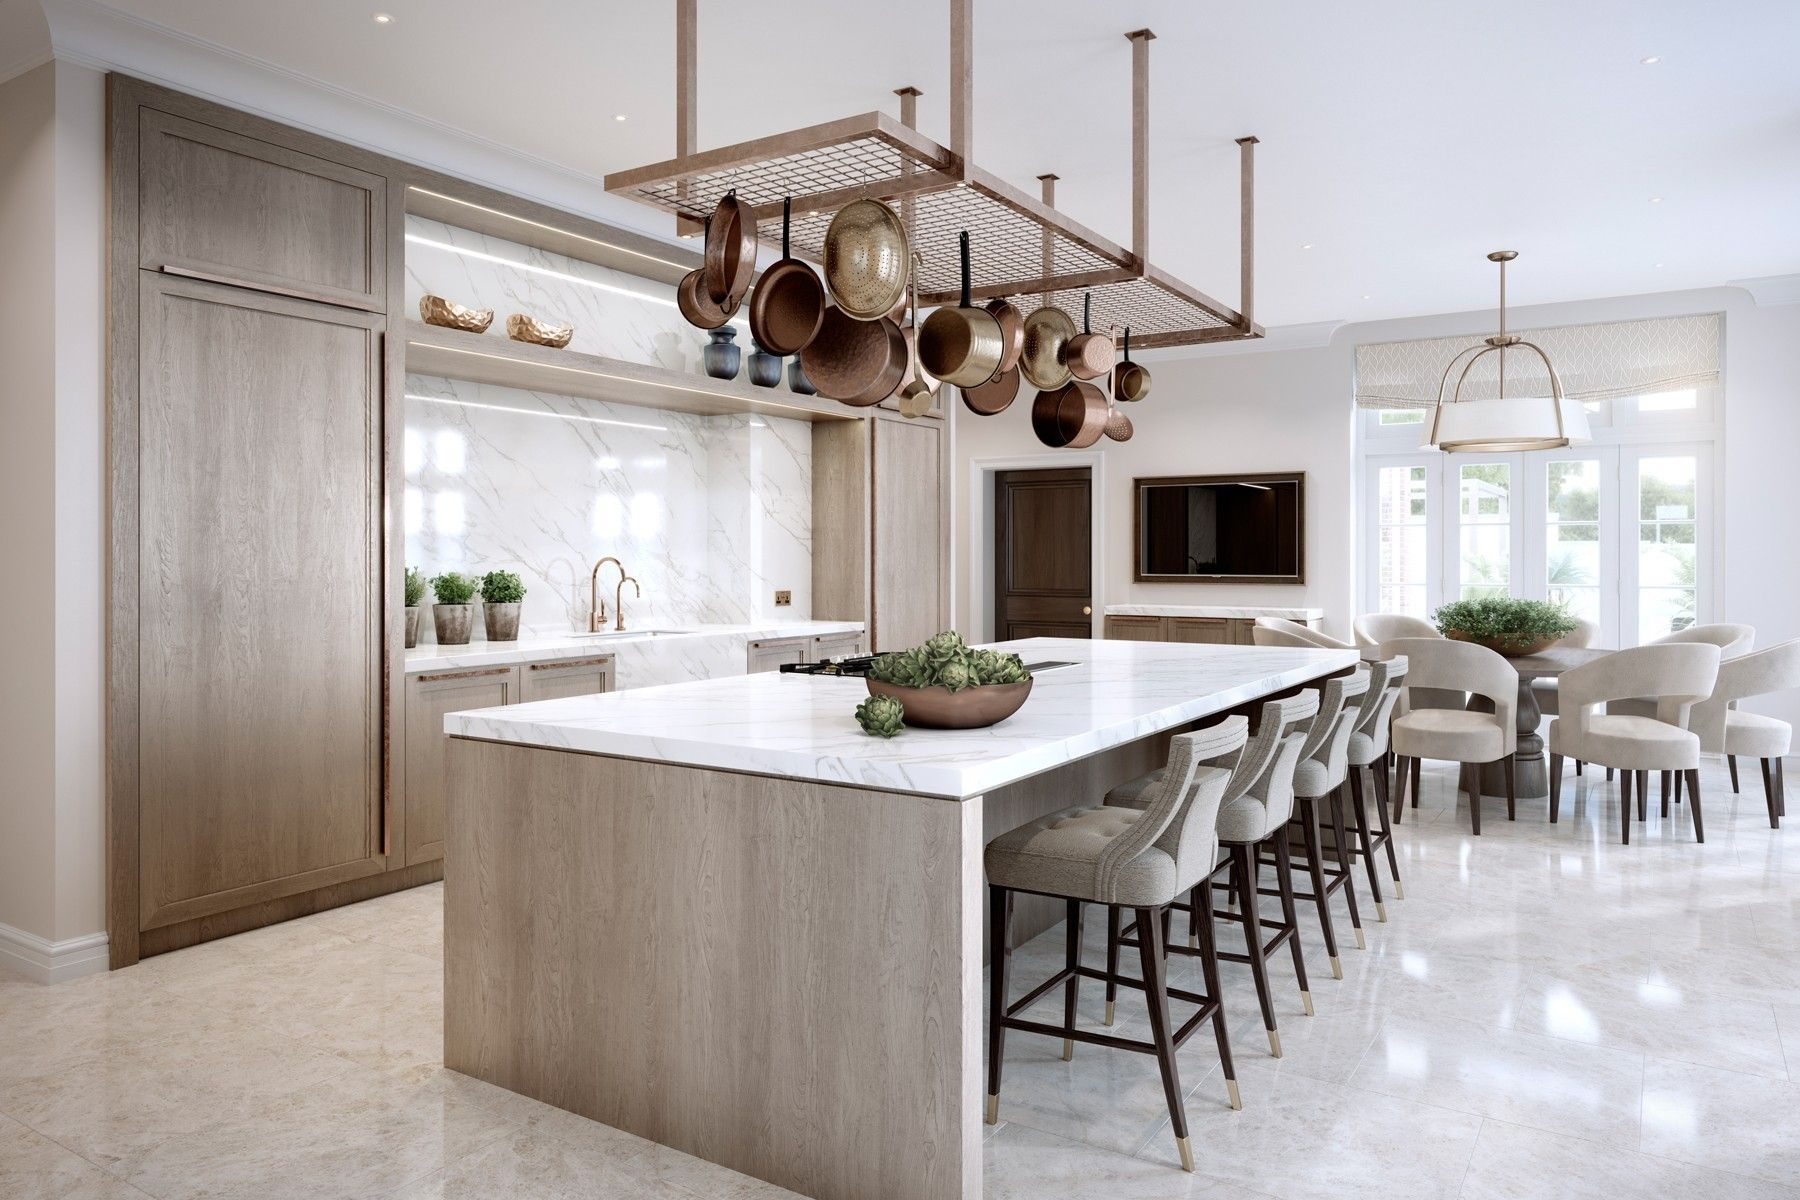 Kitchen Seating Ideas Surrey Family Home Luxury Interior Design Laura Hammett Ger